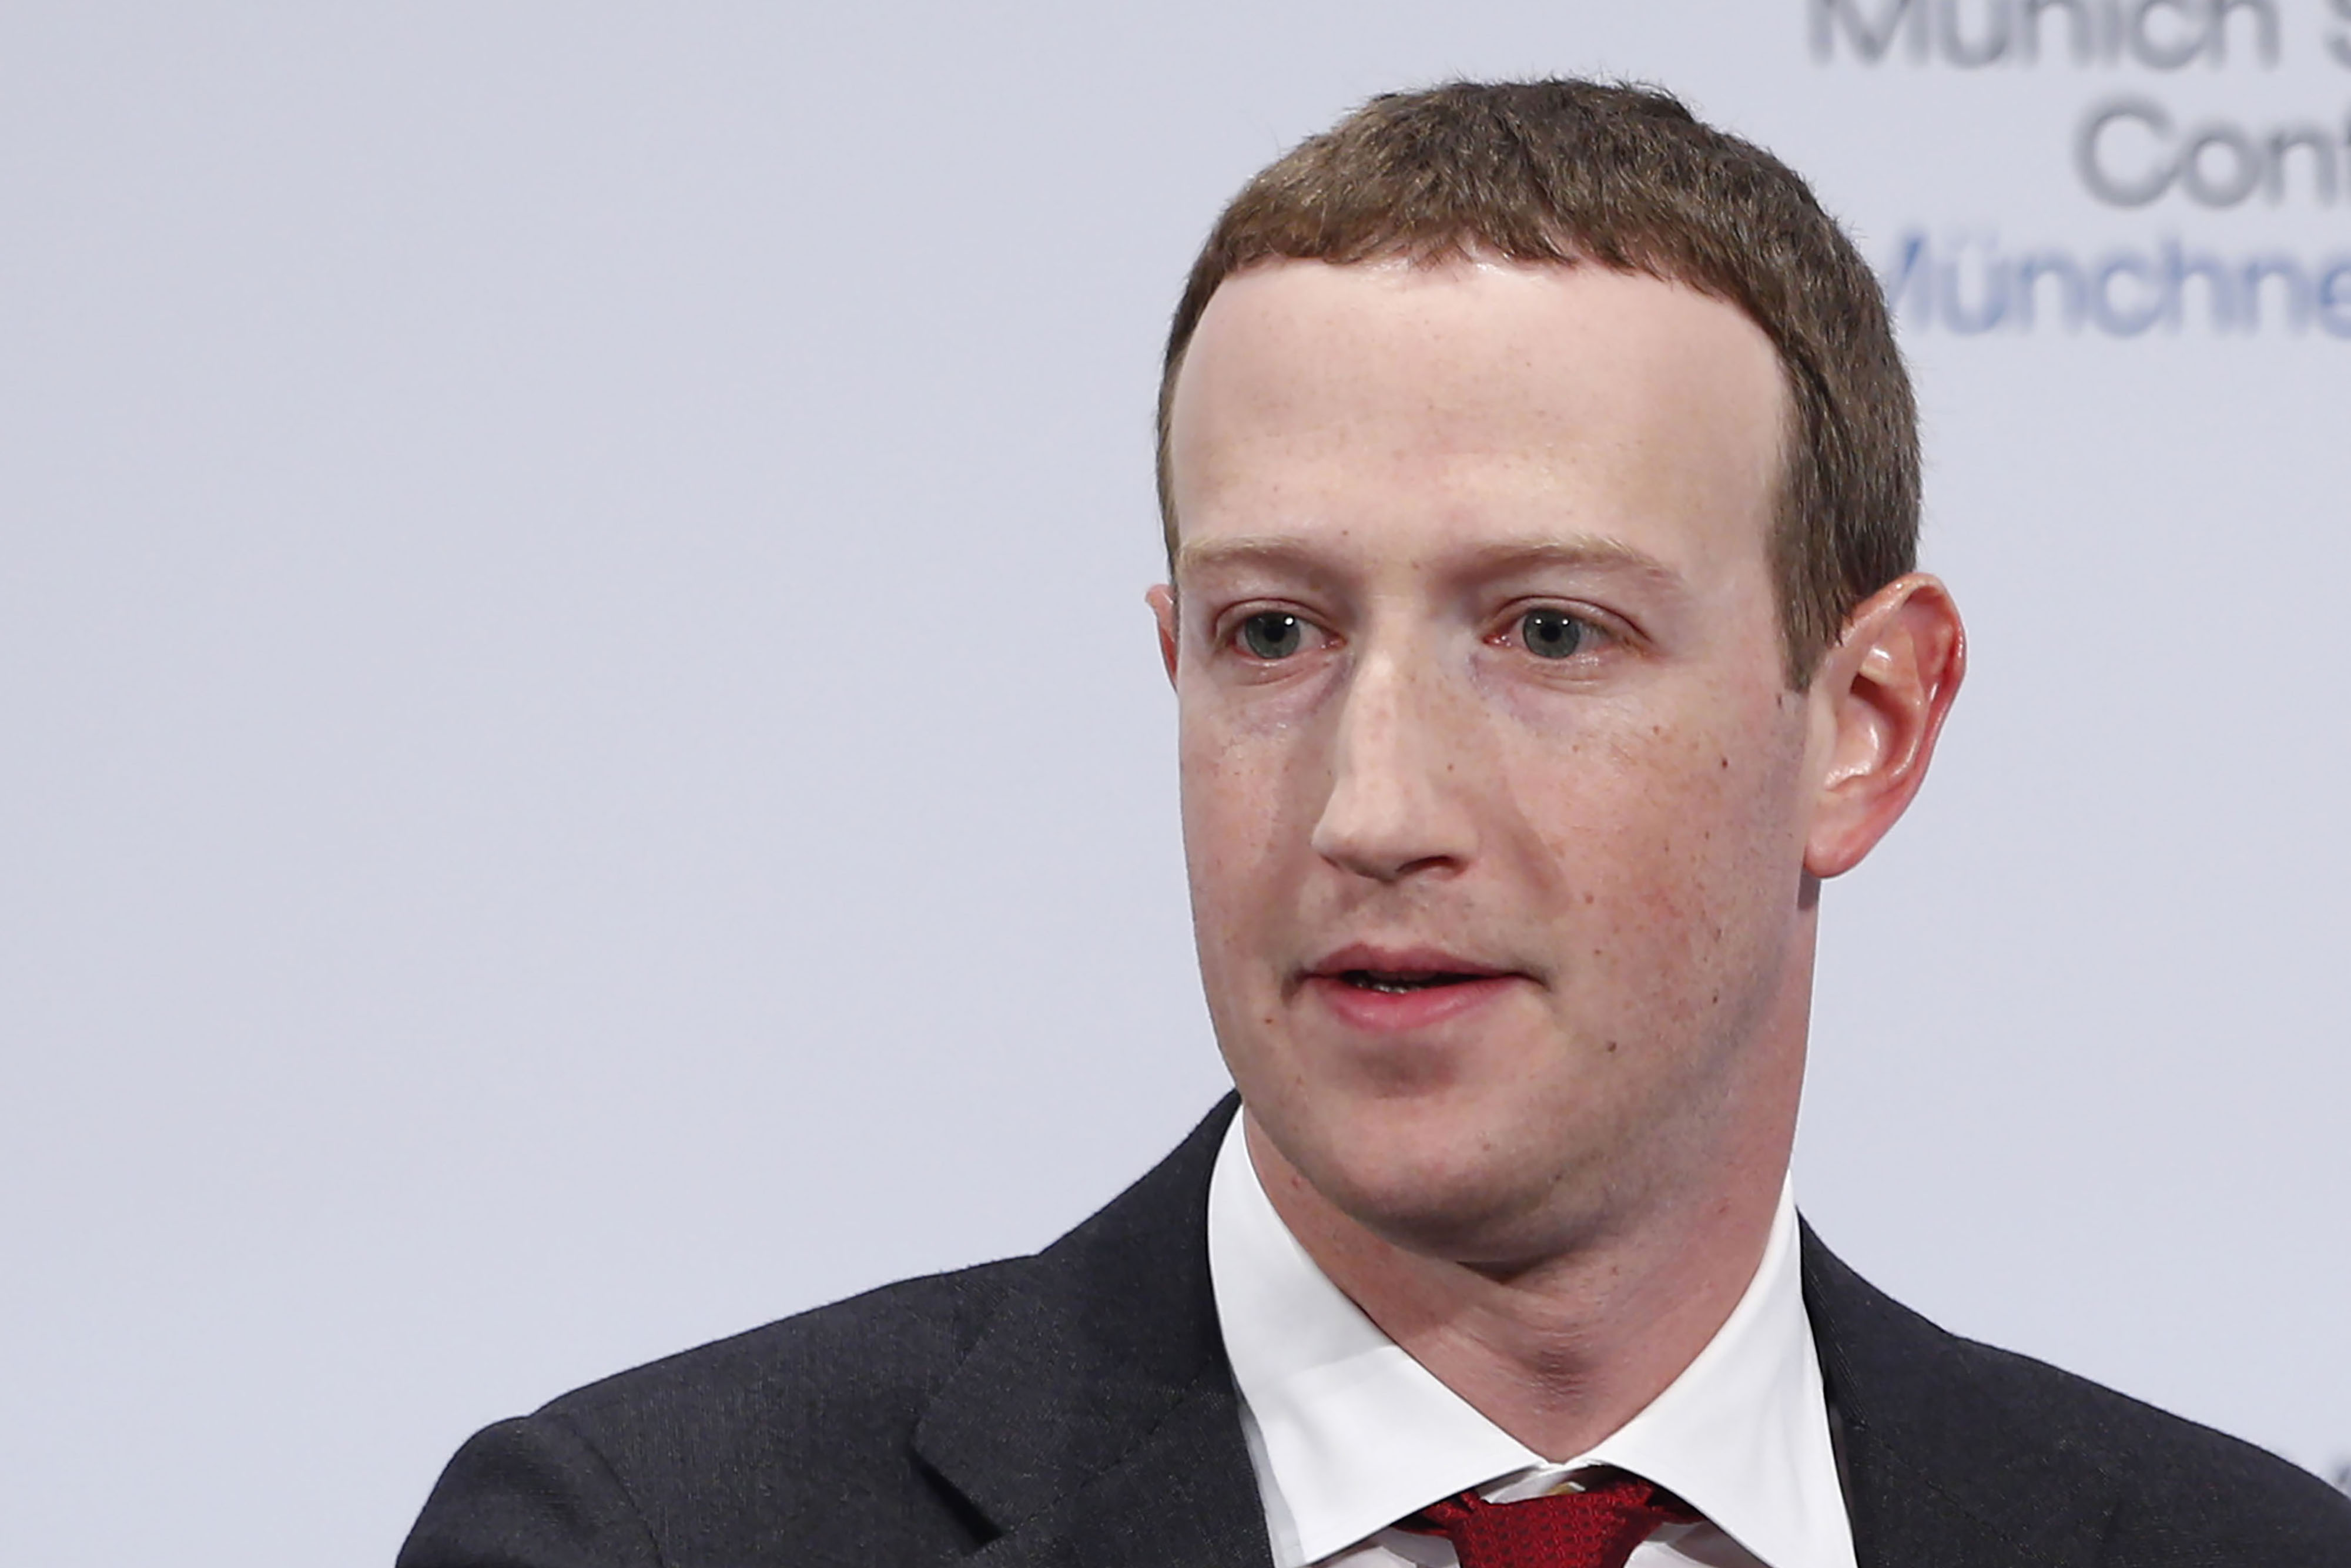 Facebook Removes Trump Ads for Violating 'Organized Hate' Policy